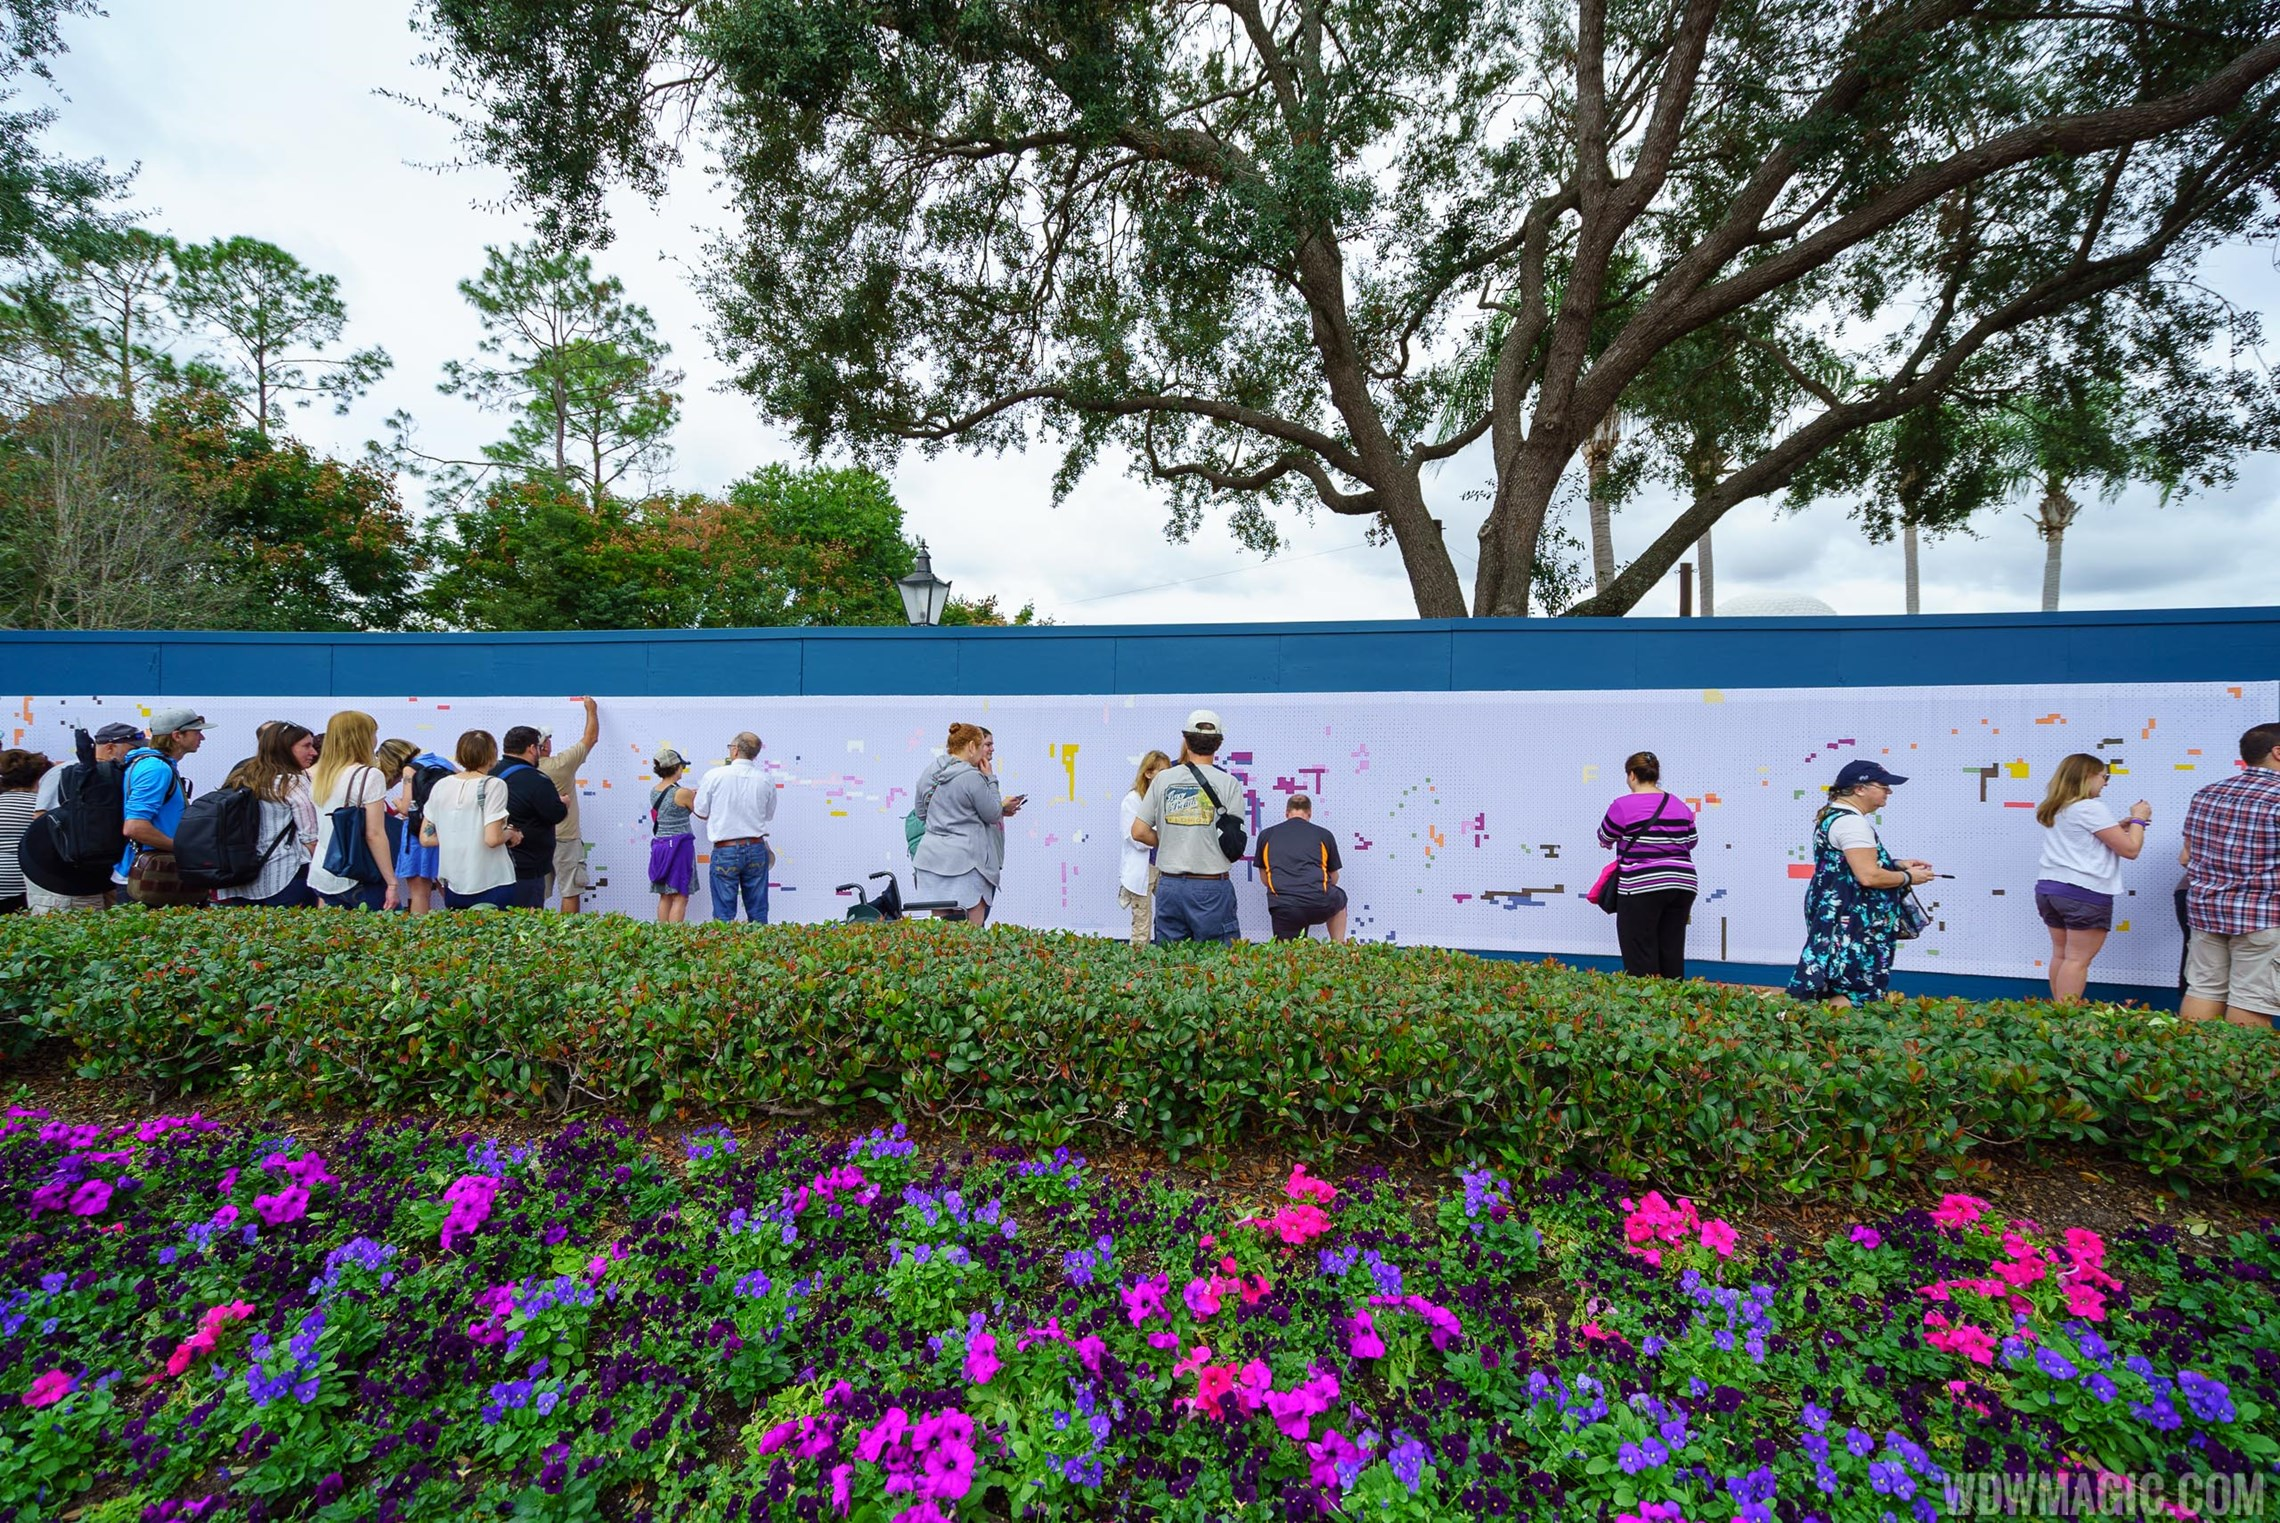 Opening day at the 2017 Epcot International Festival of the Arts